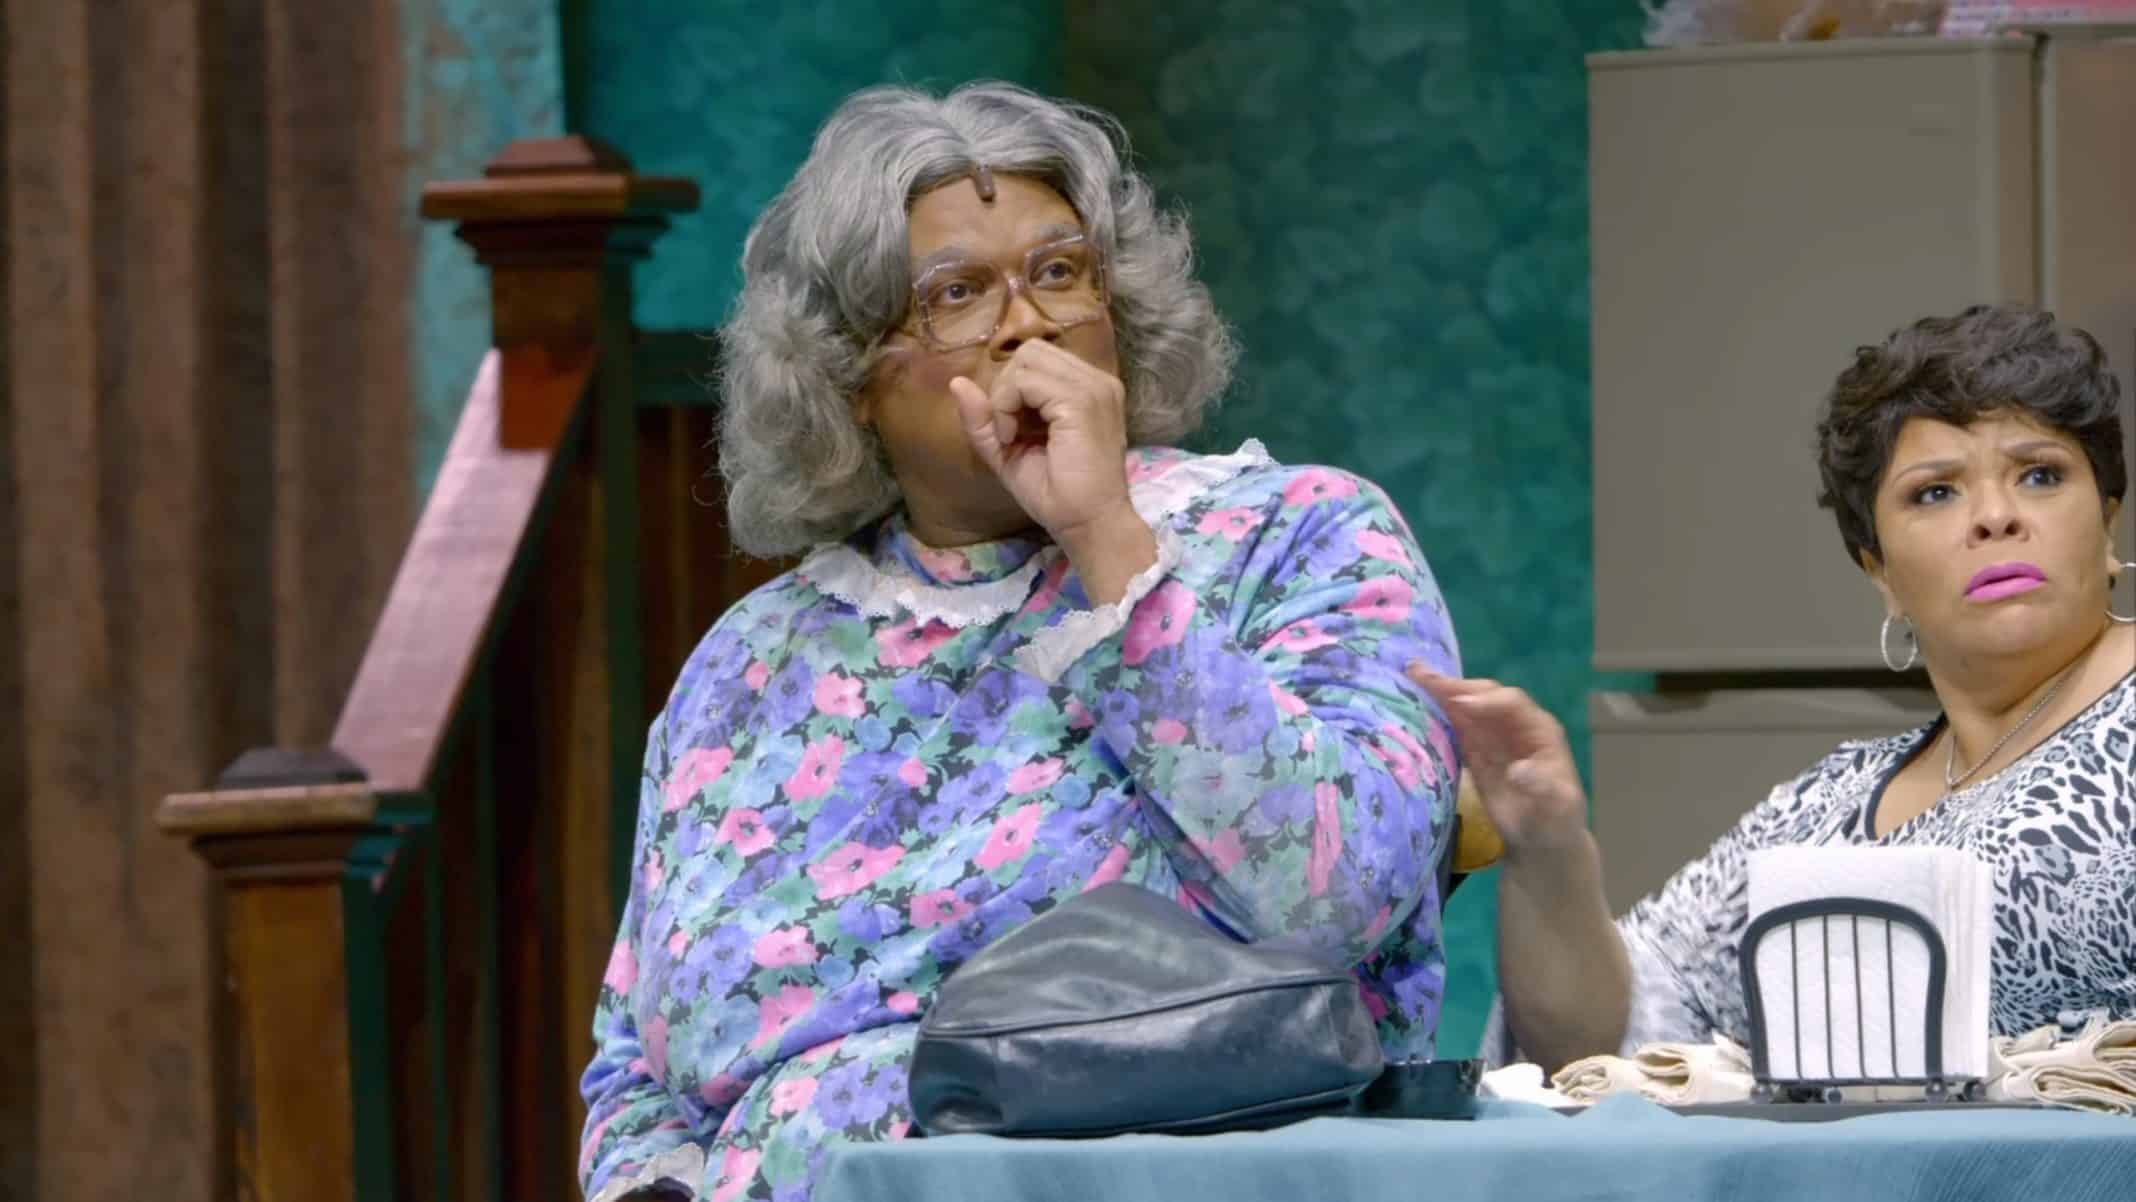 Madea (Tyler Perry) shocked at Titi